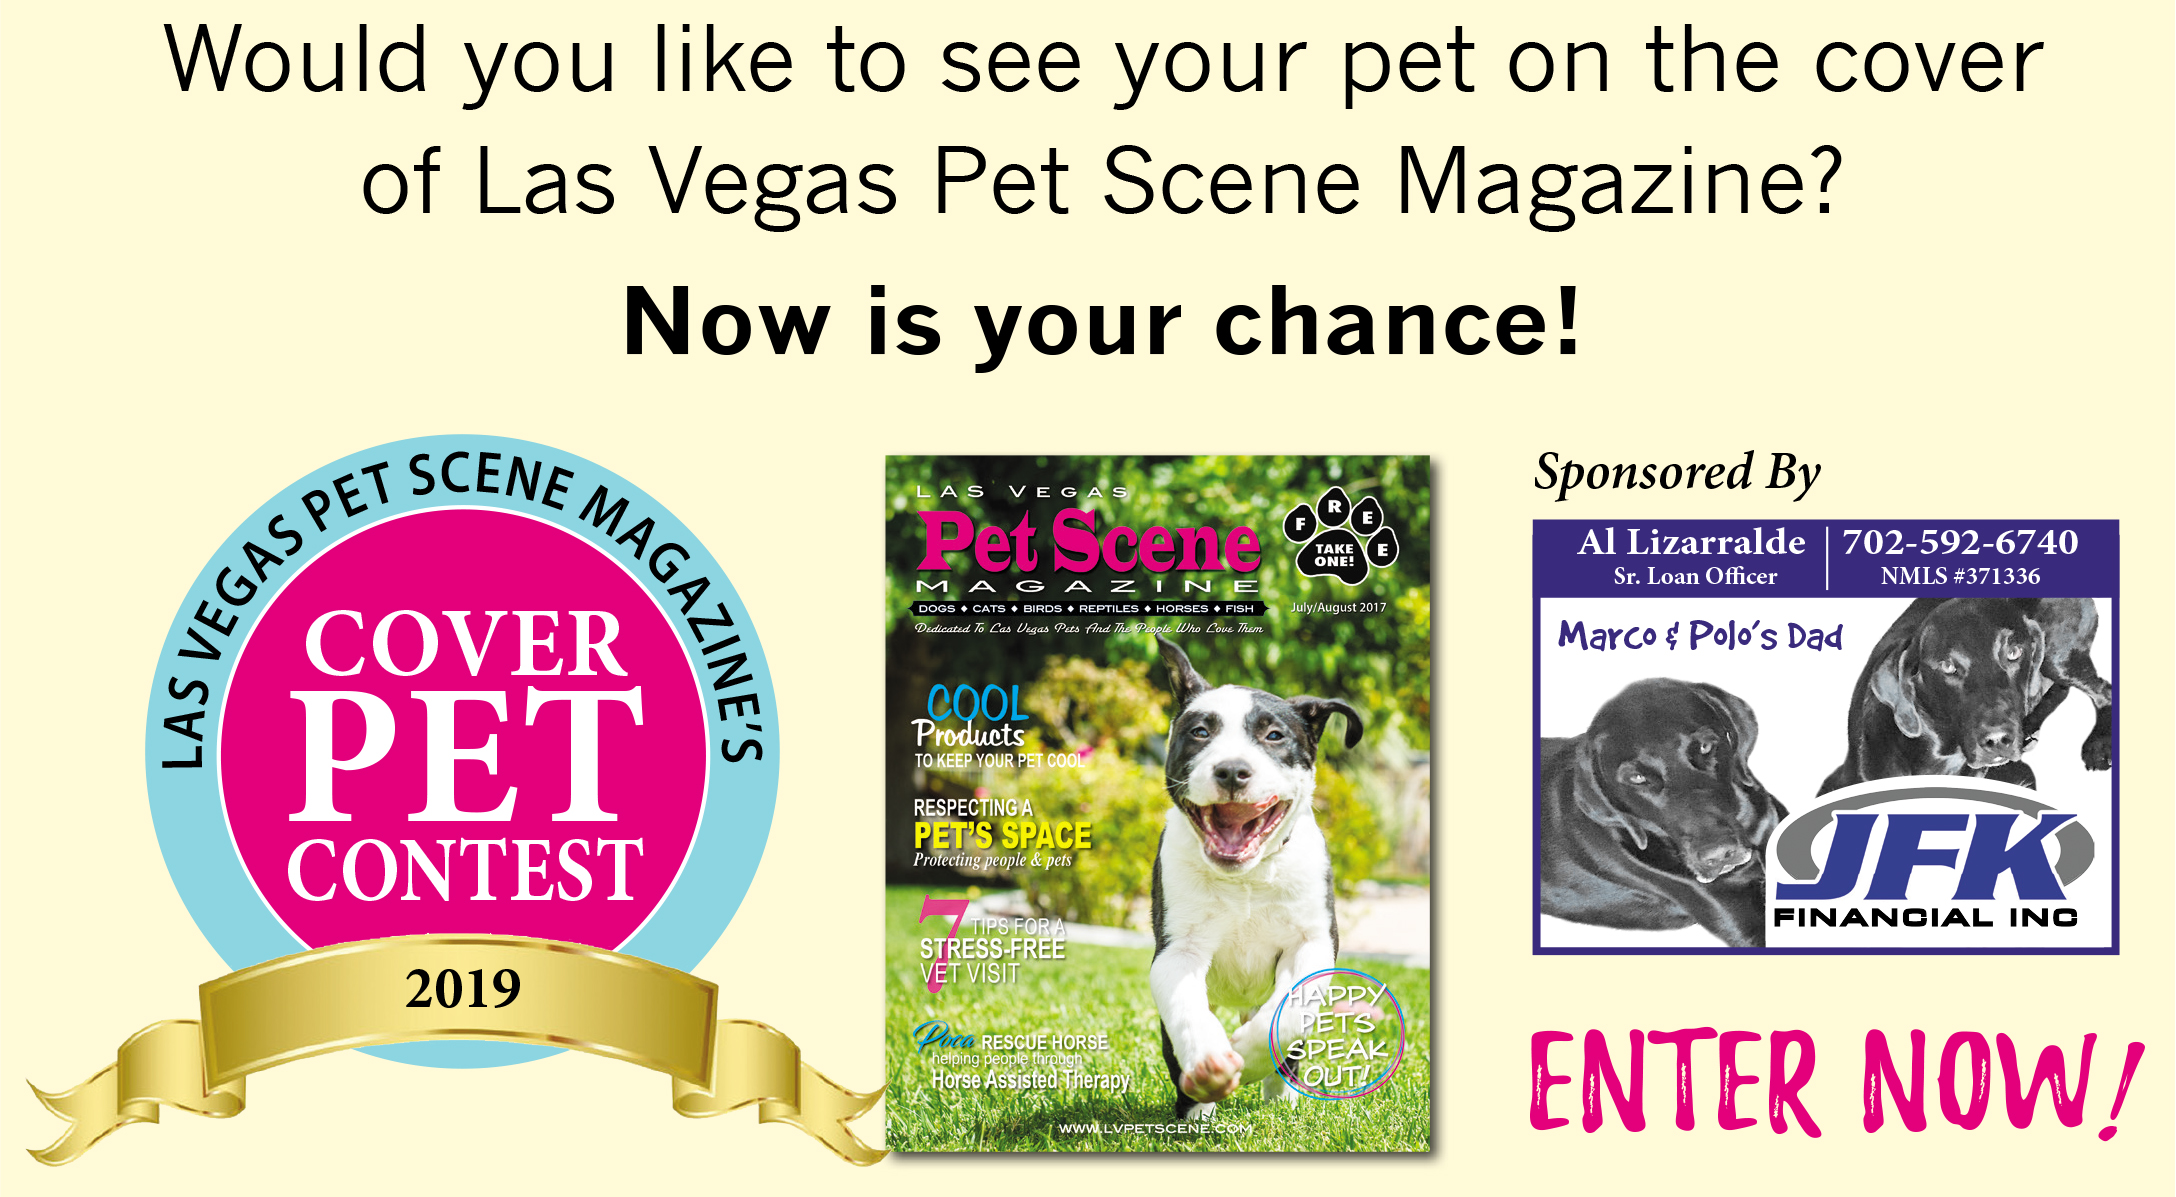 Las Vegas Pet Scene Magazine's COVER PET CONTEST